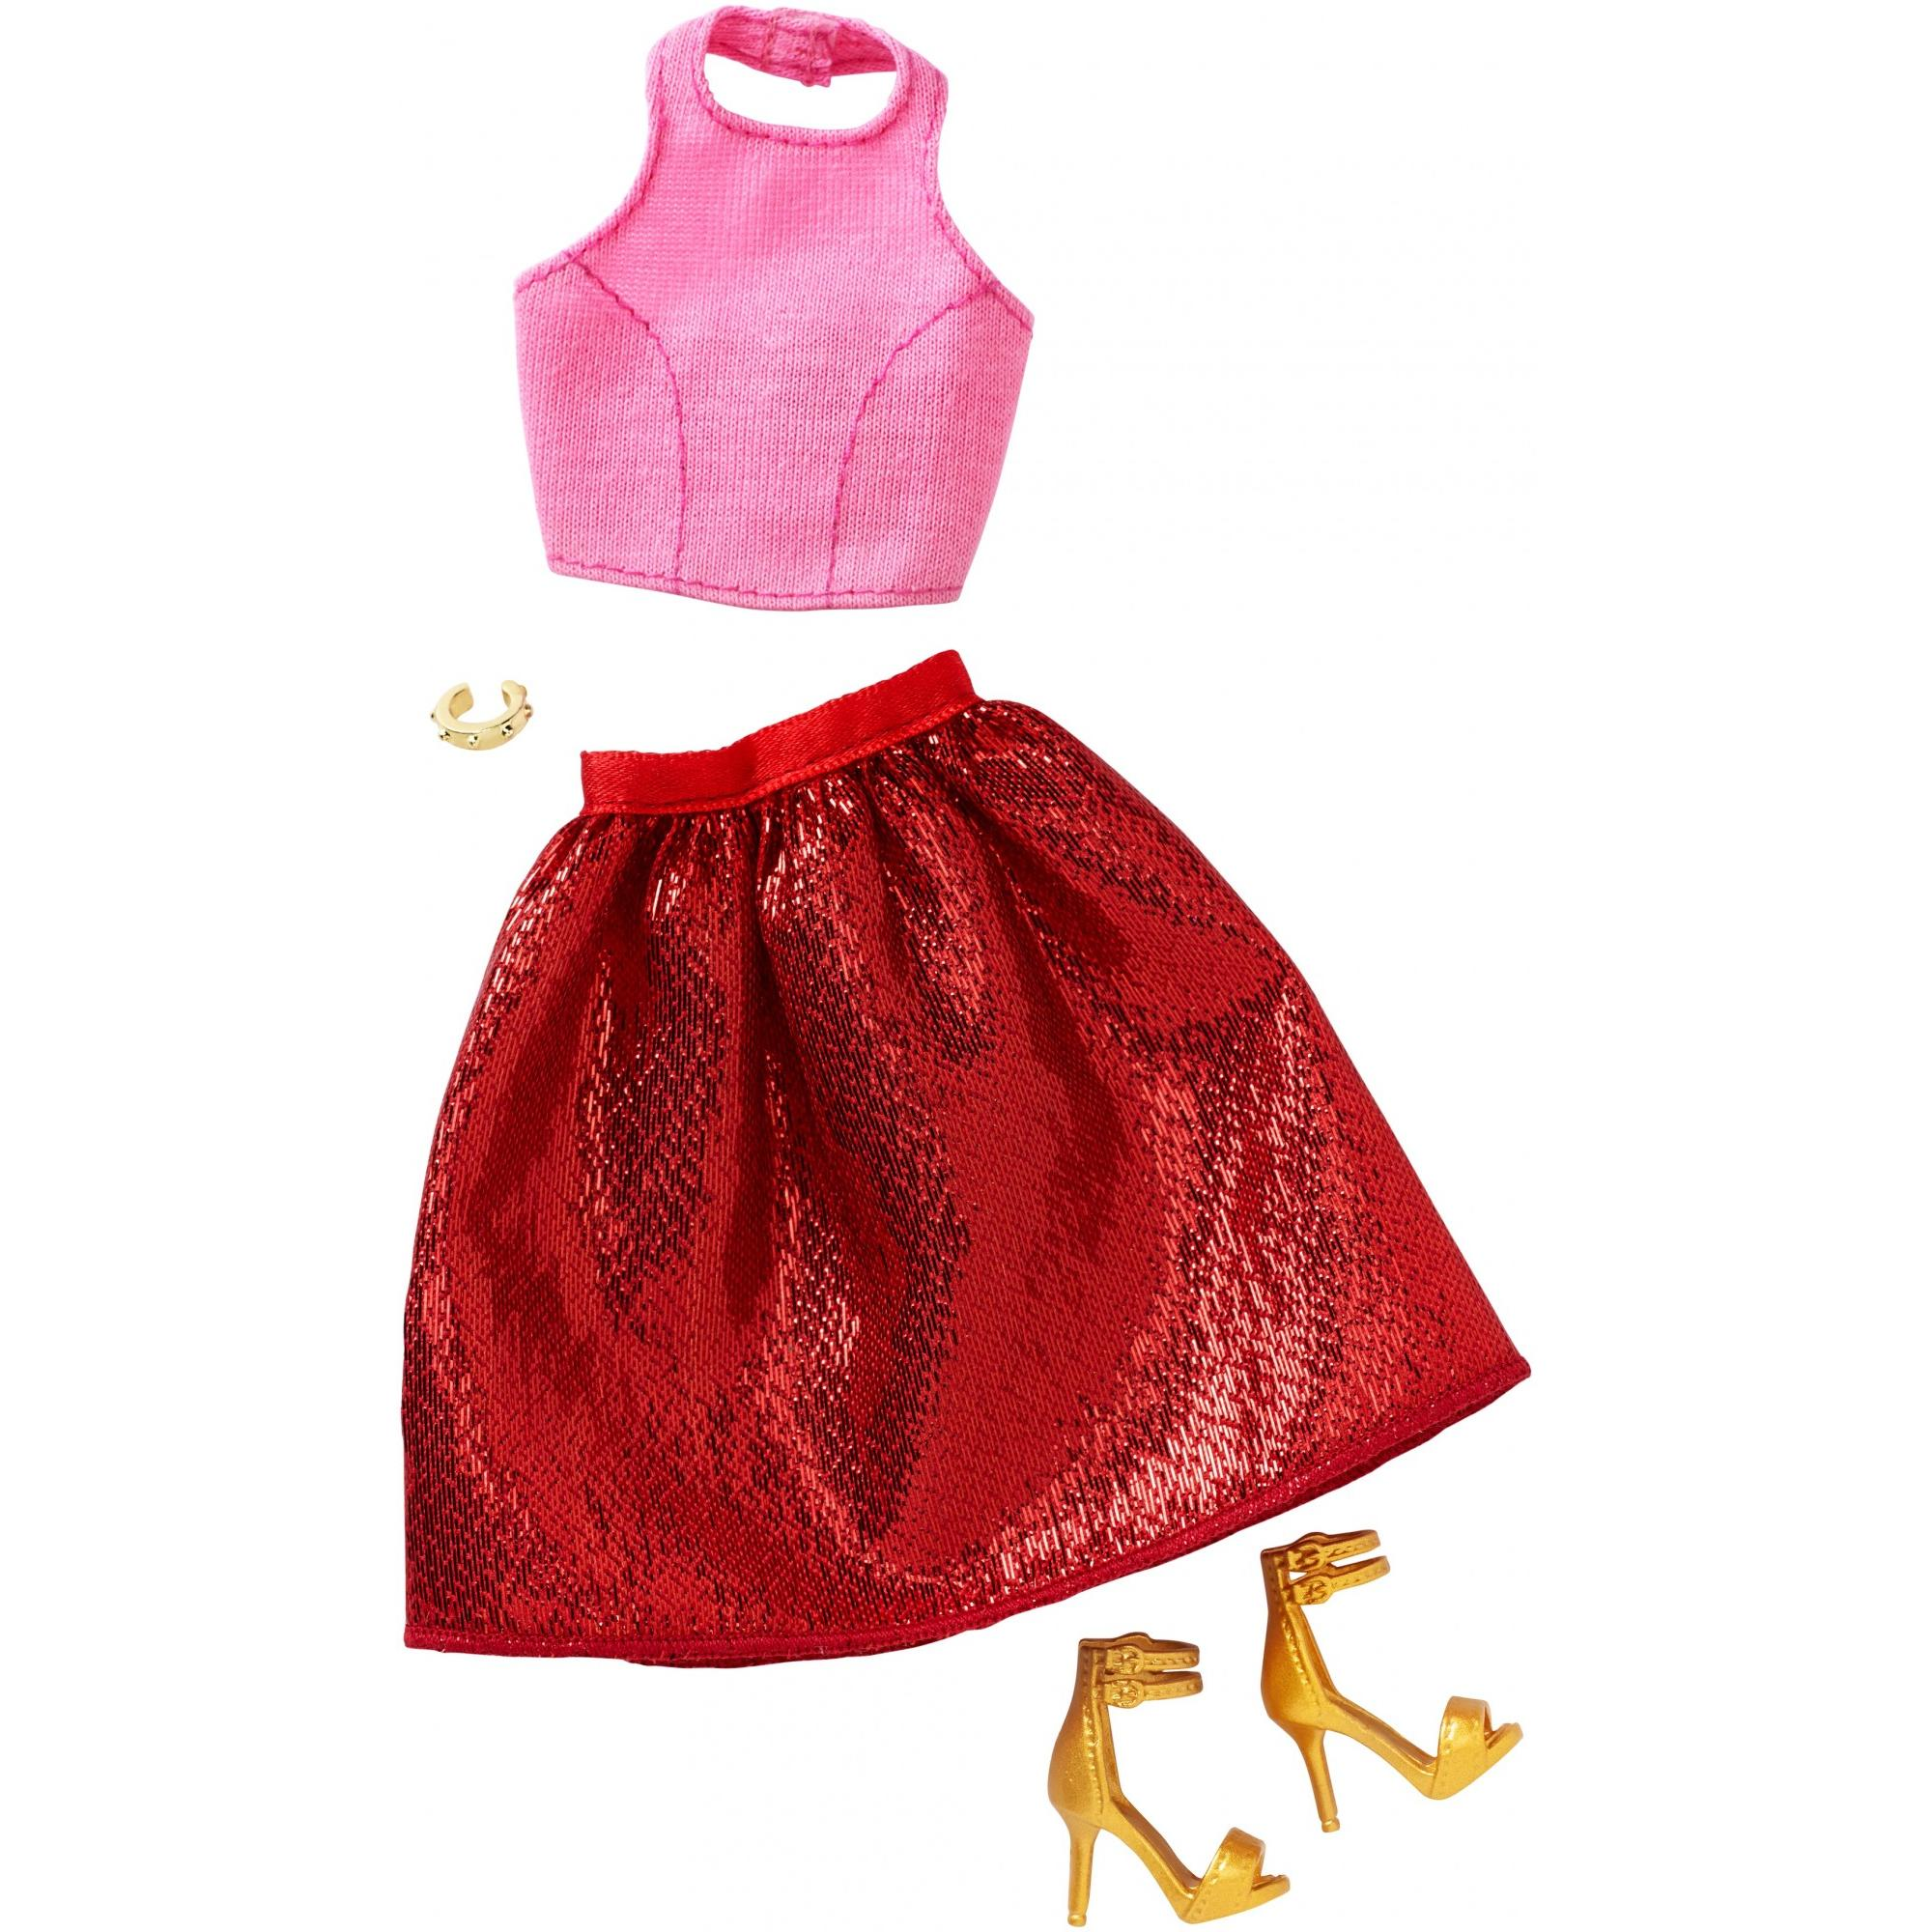 Barbie Fashions 1 Tall Red Skirt Pack